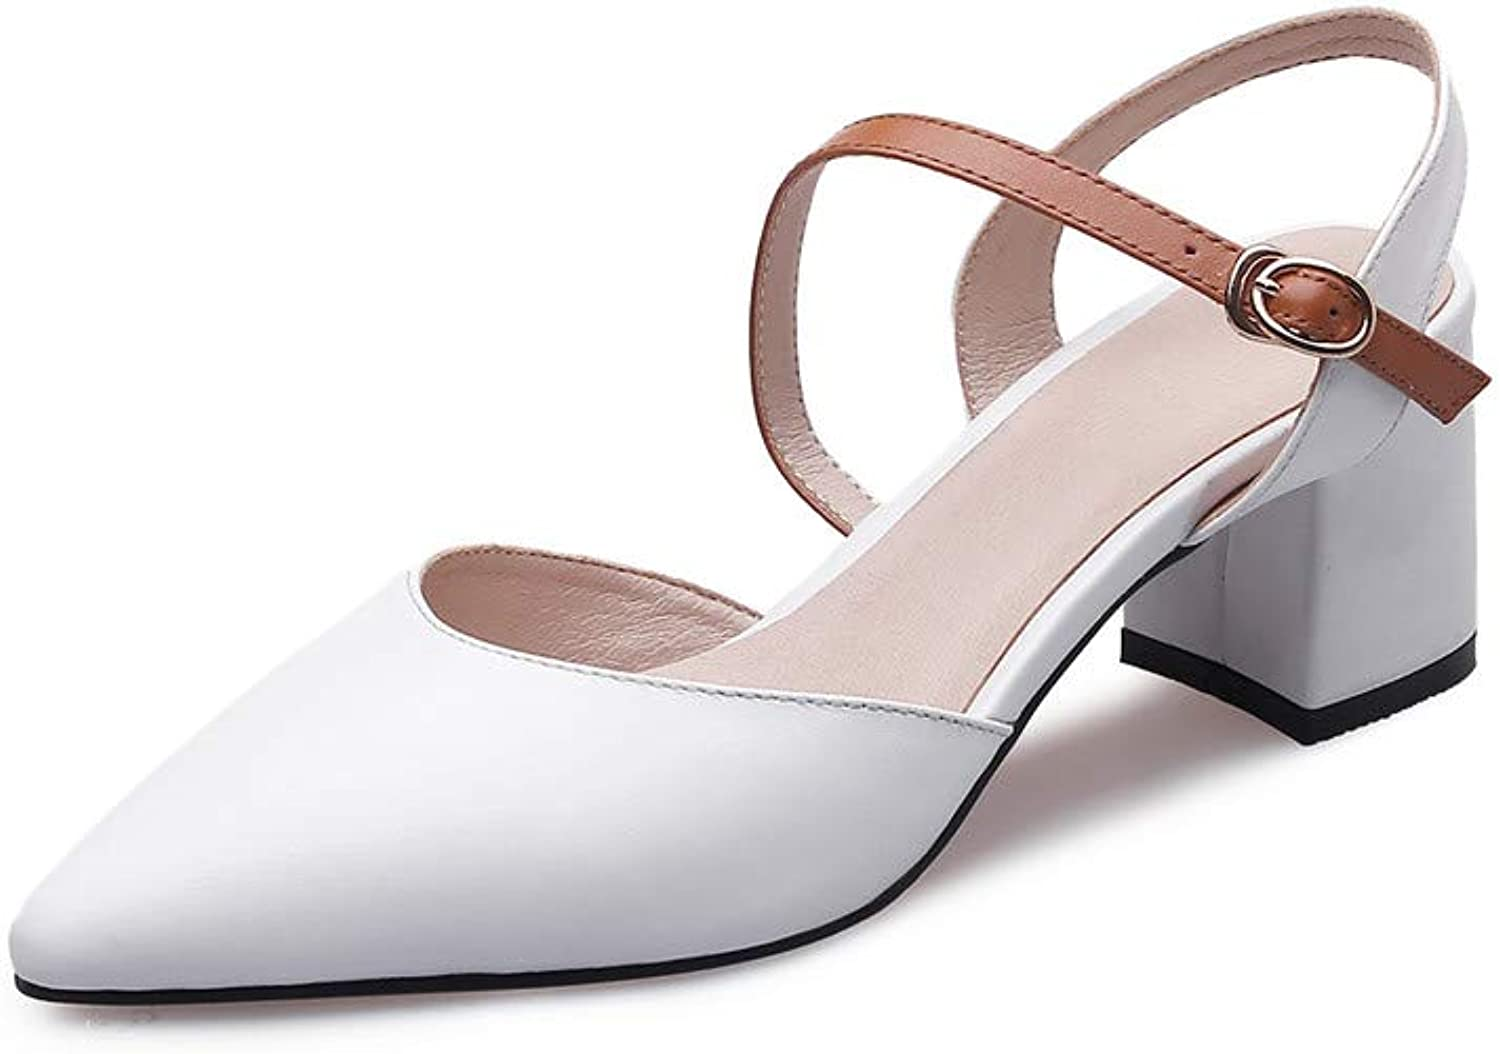 Nine Seven Genuine Leather Women's Pointed Toe Mid Chunky Heel Elegant Handmade Concise Buckle Sling Back Fashion Pumps